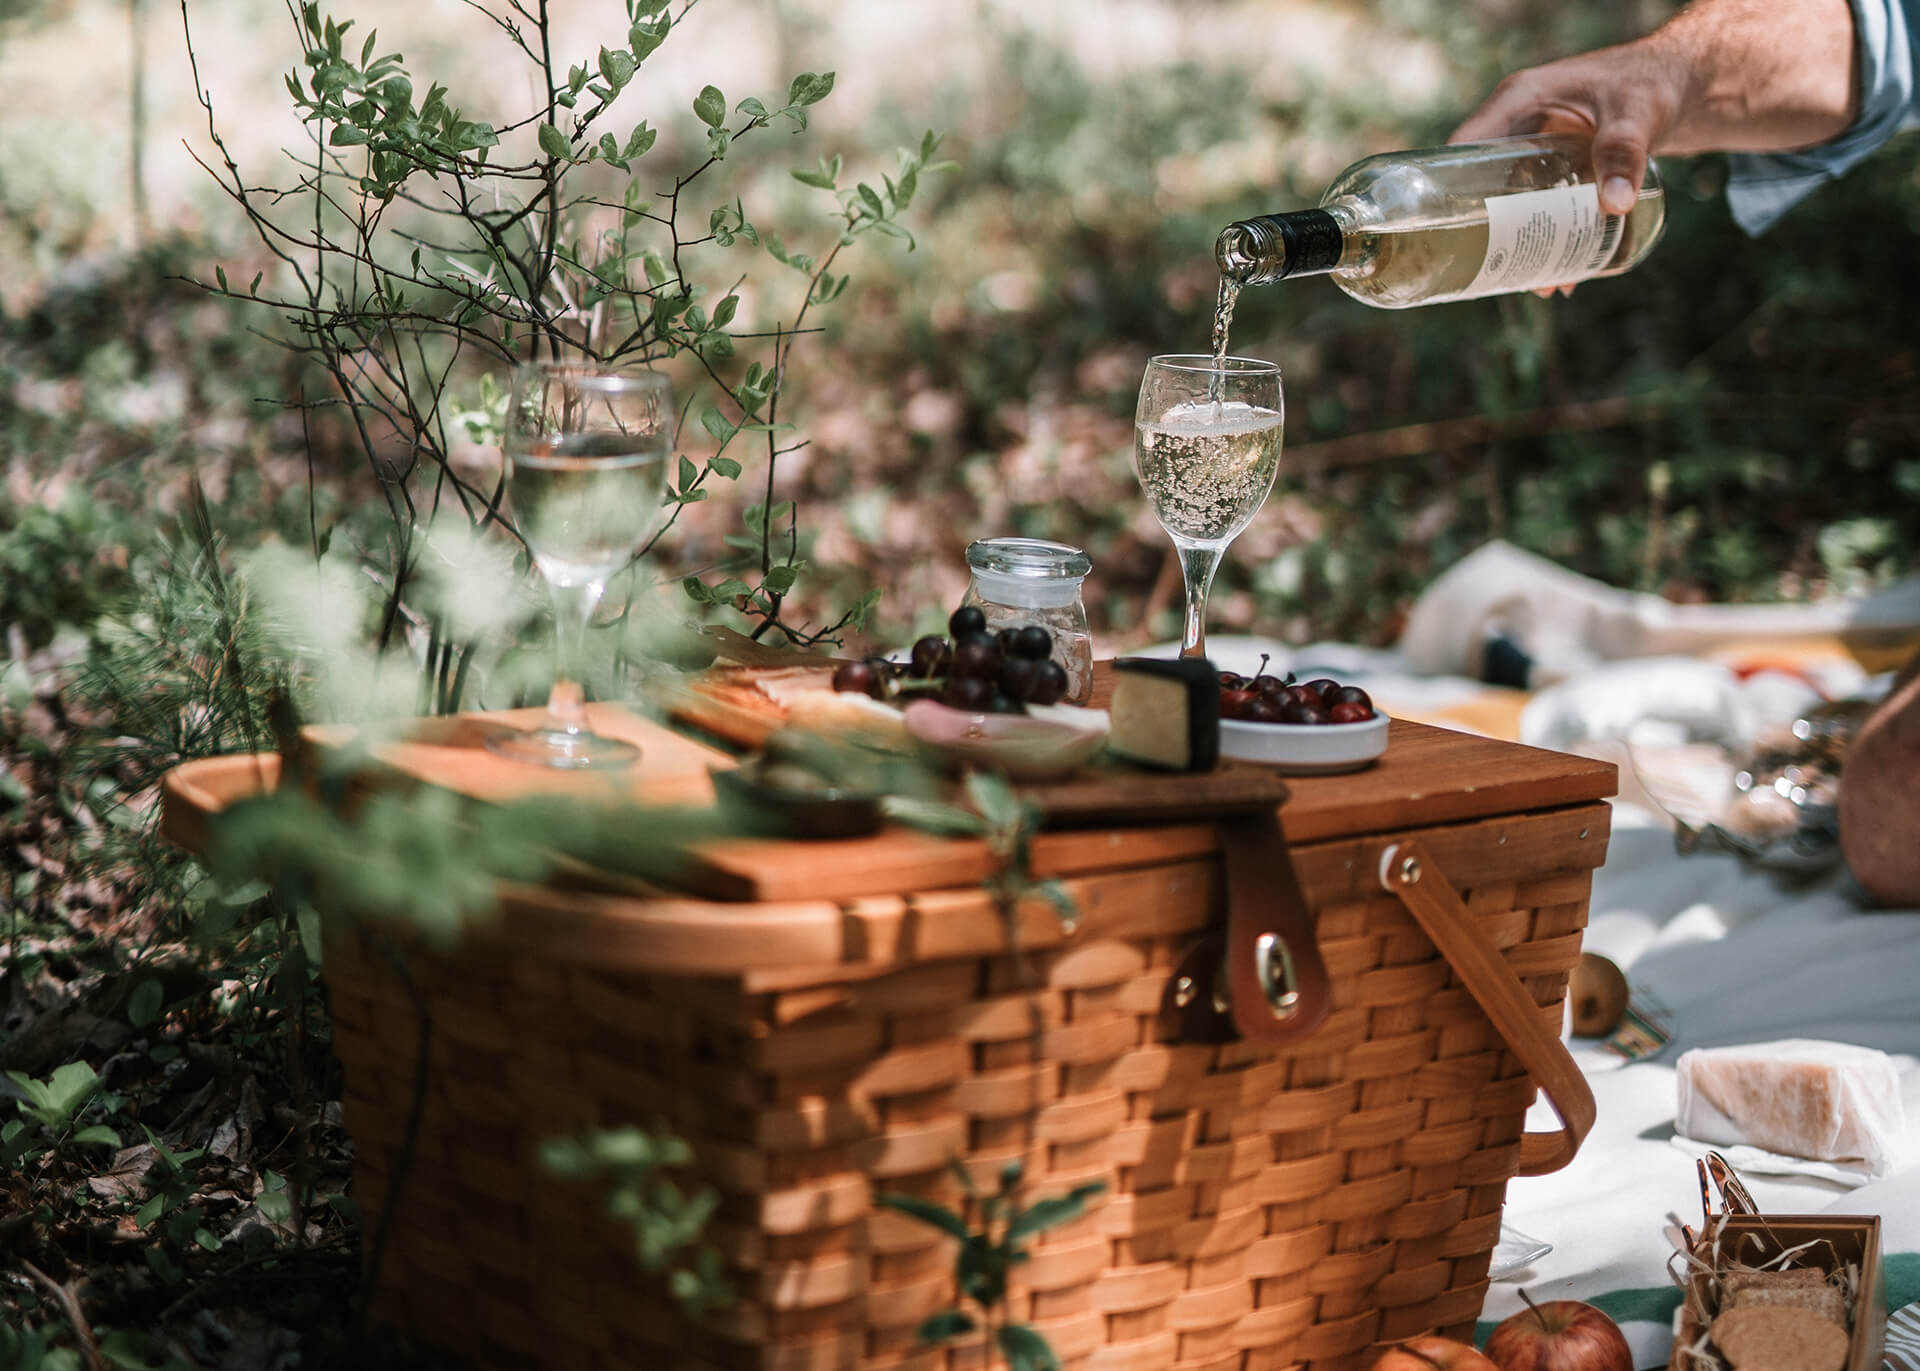 romantic picnic date ideas for food and drinks